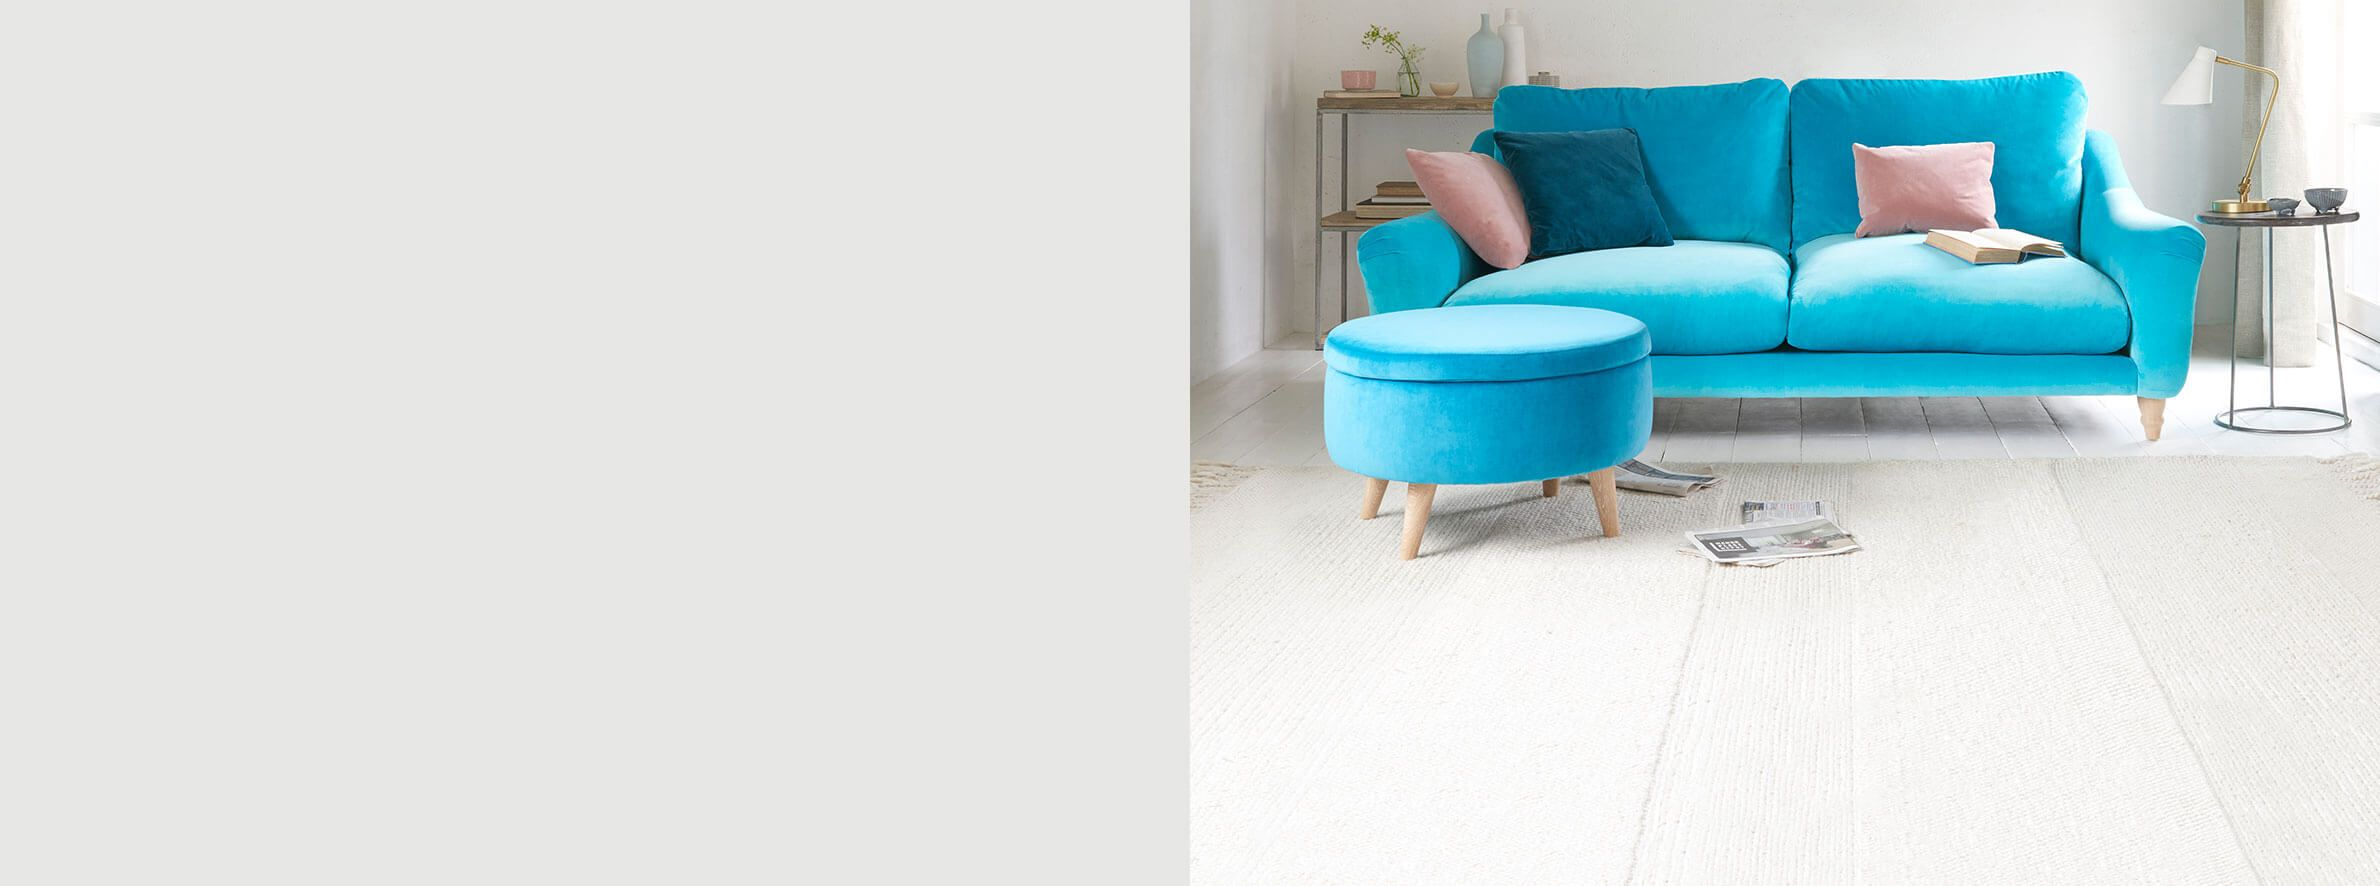 We Ve Collaborated With Leading Uk Furniture Company Loaf To Launch Exclusive Sofas And Beds Designed In Their Distinctly Relaxed Style